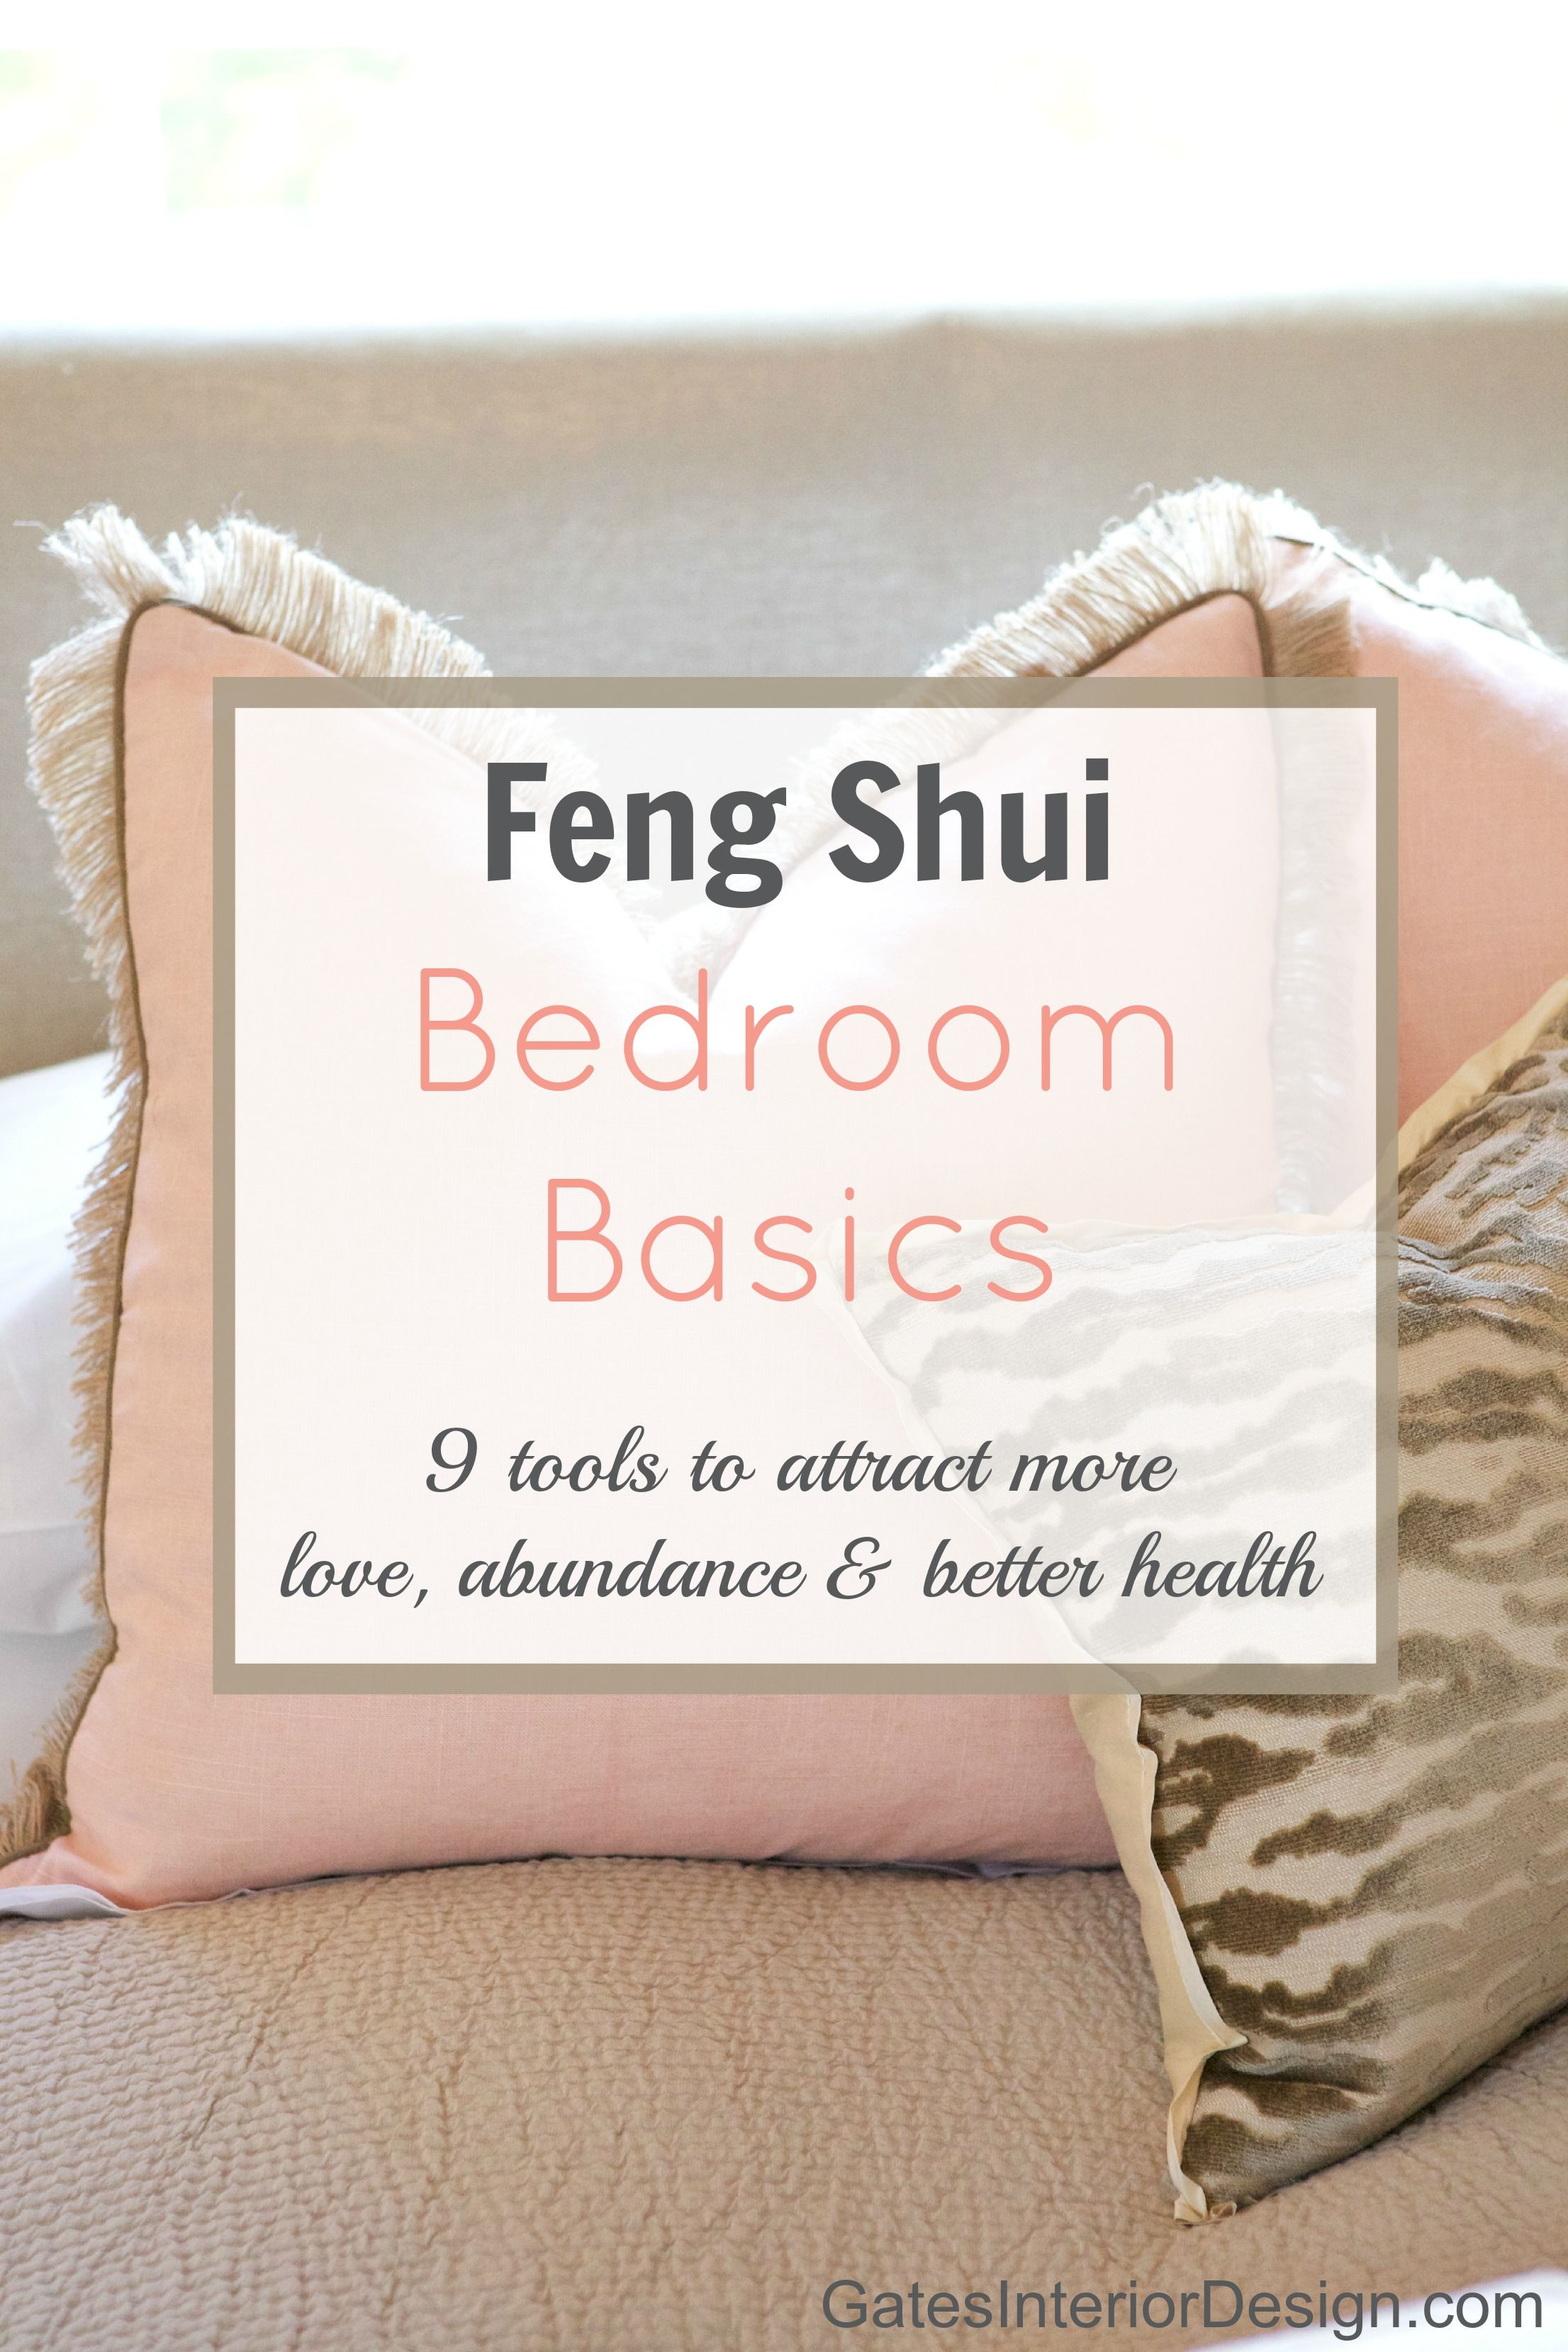 die besten 25 feng shui schlafzimmer ideen auf pinterest feng shui bett feng shui. Black Bedroom Furniture Sets. Home Design Ideas